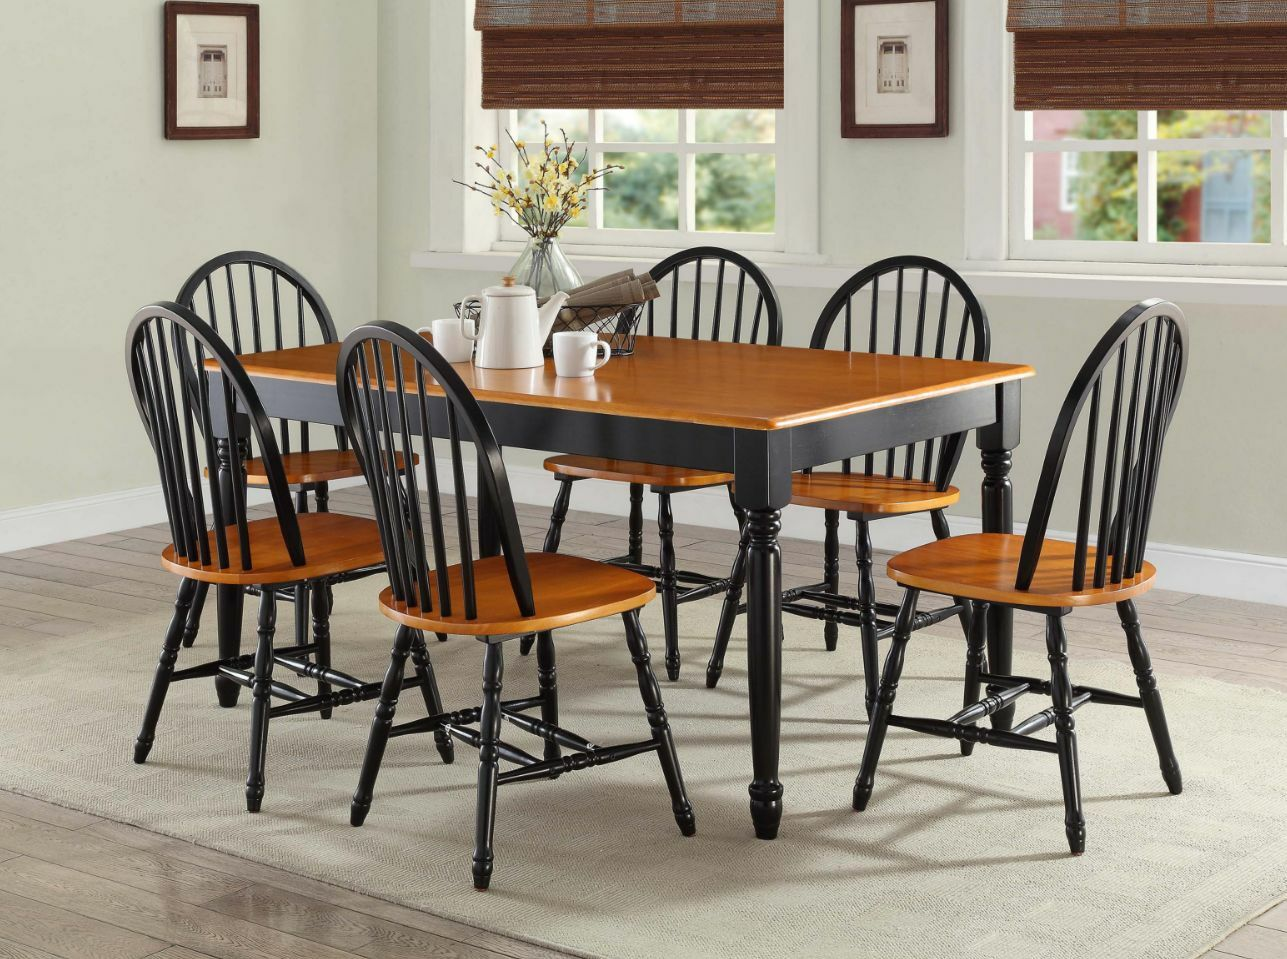 Farmhouse Table And Chairs Set 7 Pc Dining Room Sets Table Chairs Wood Farmhouse Windsor